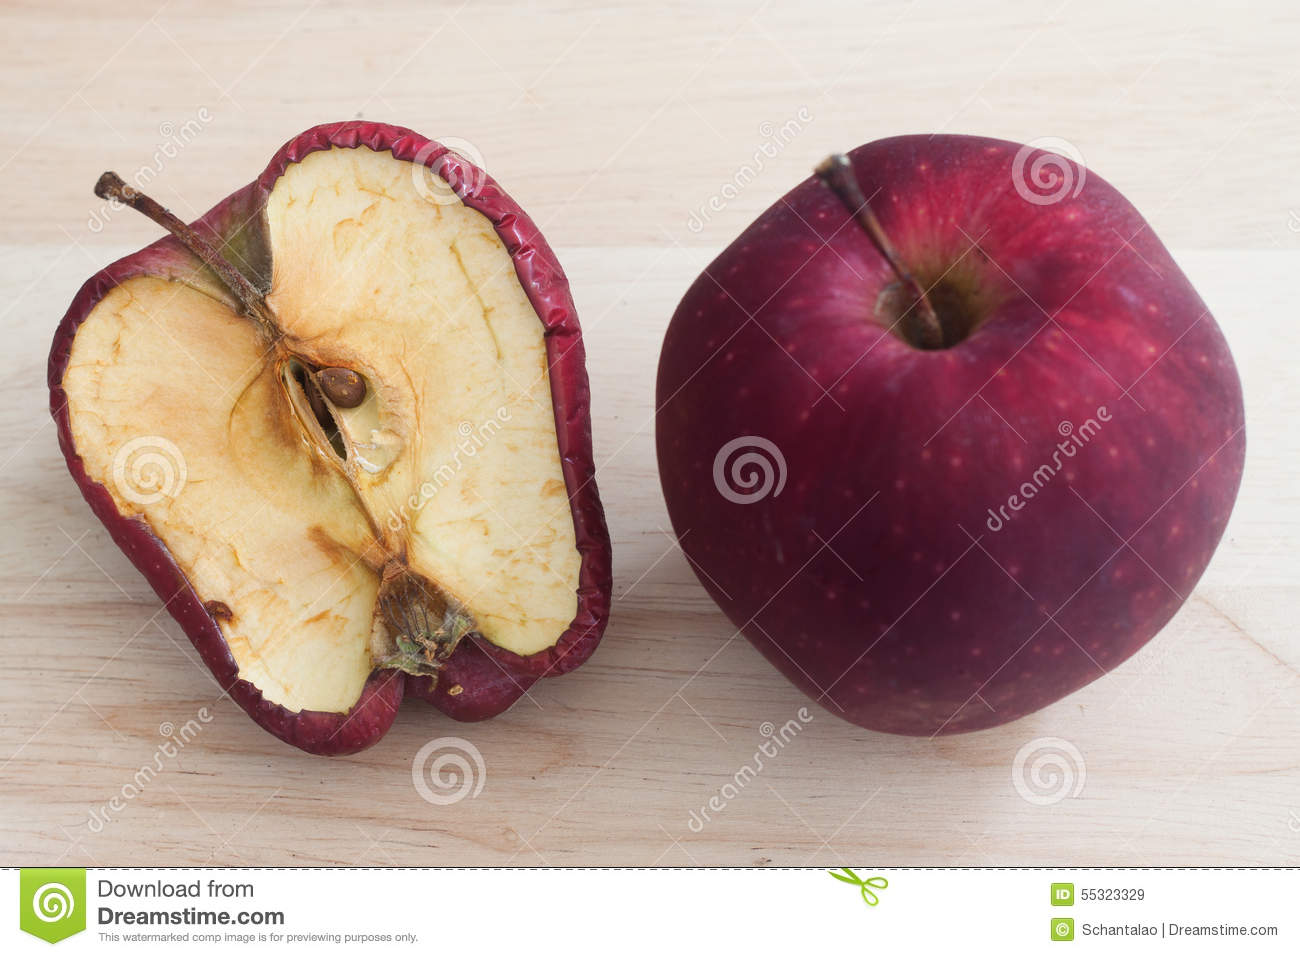 spoiled one bad red apple on wooden background Healthy and rotten apples